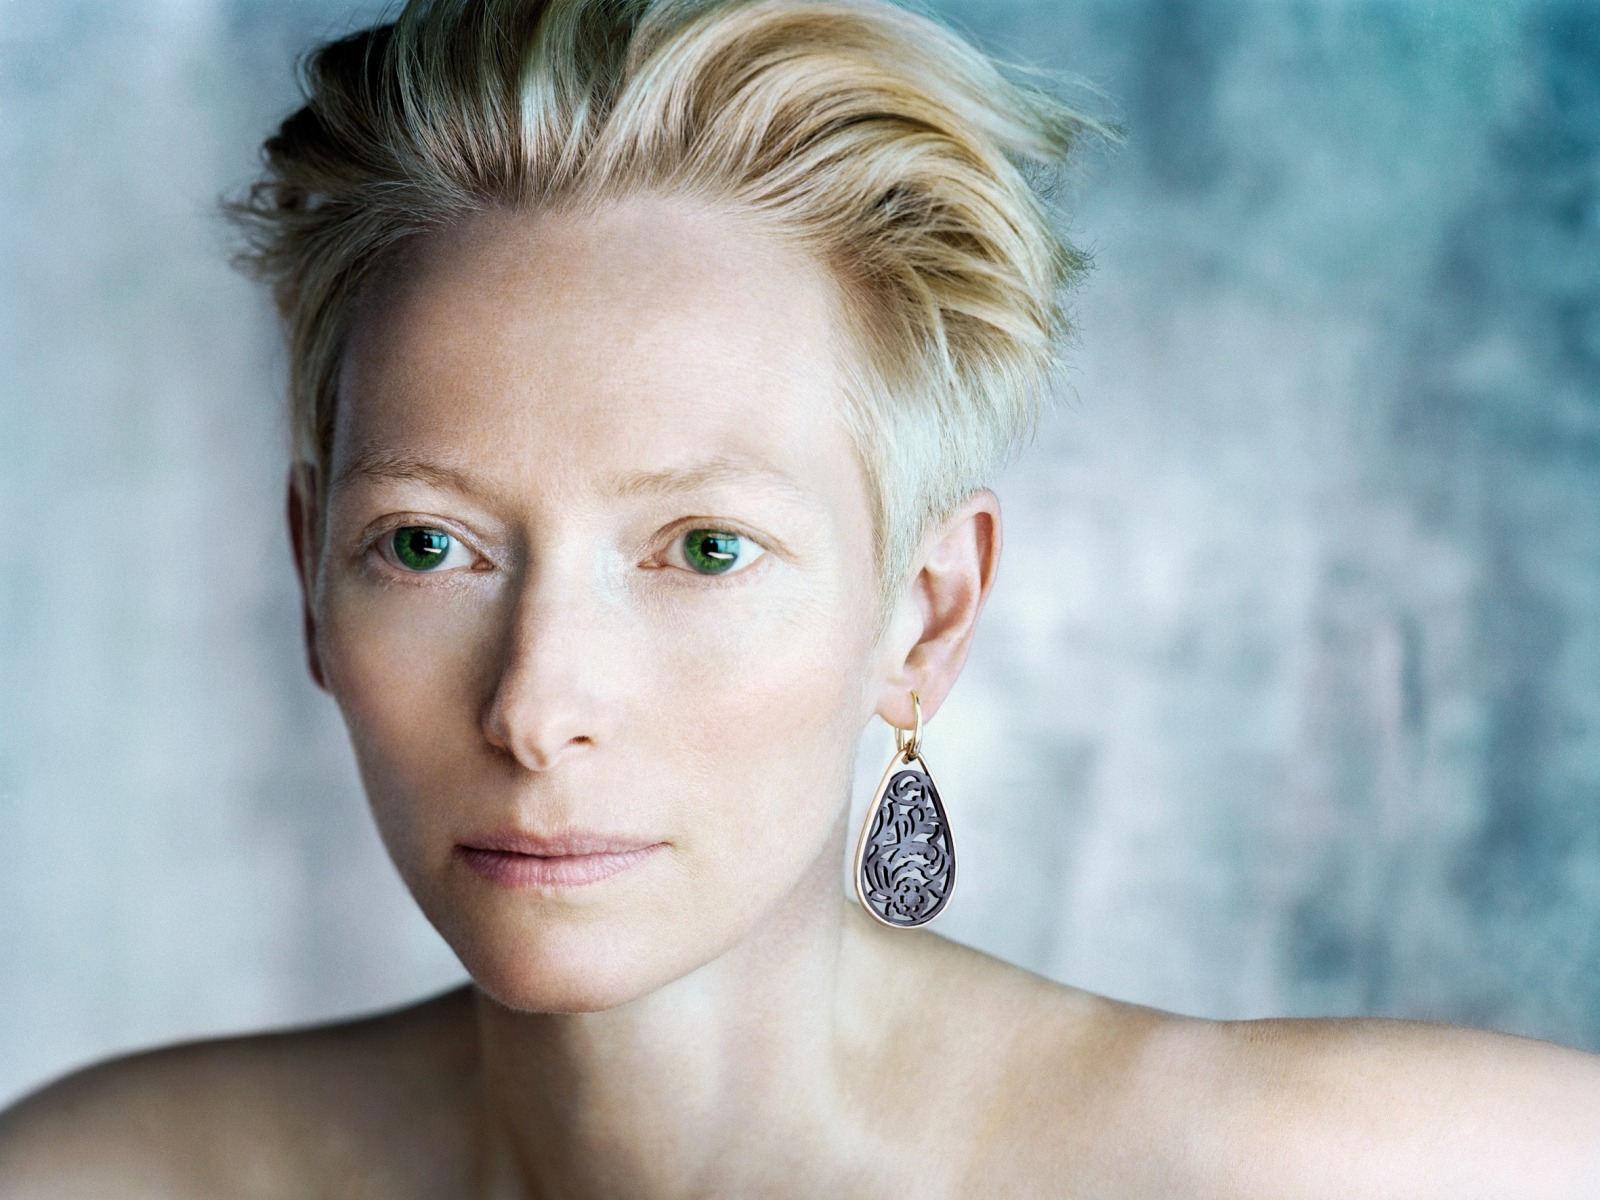 ... resolution (1600 × 1200) · ← Previous Next → · Tilda Swinton